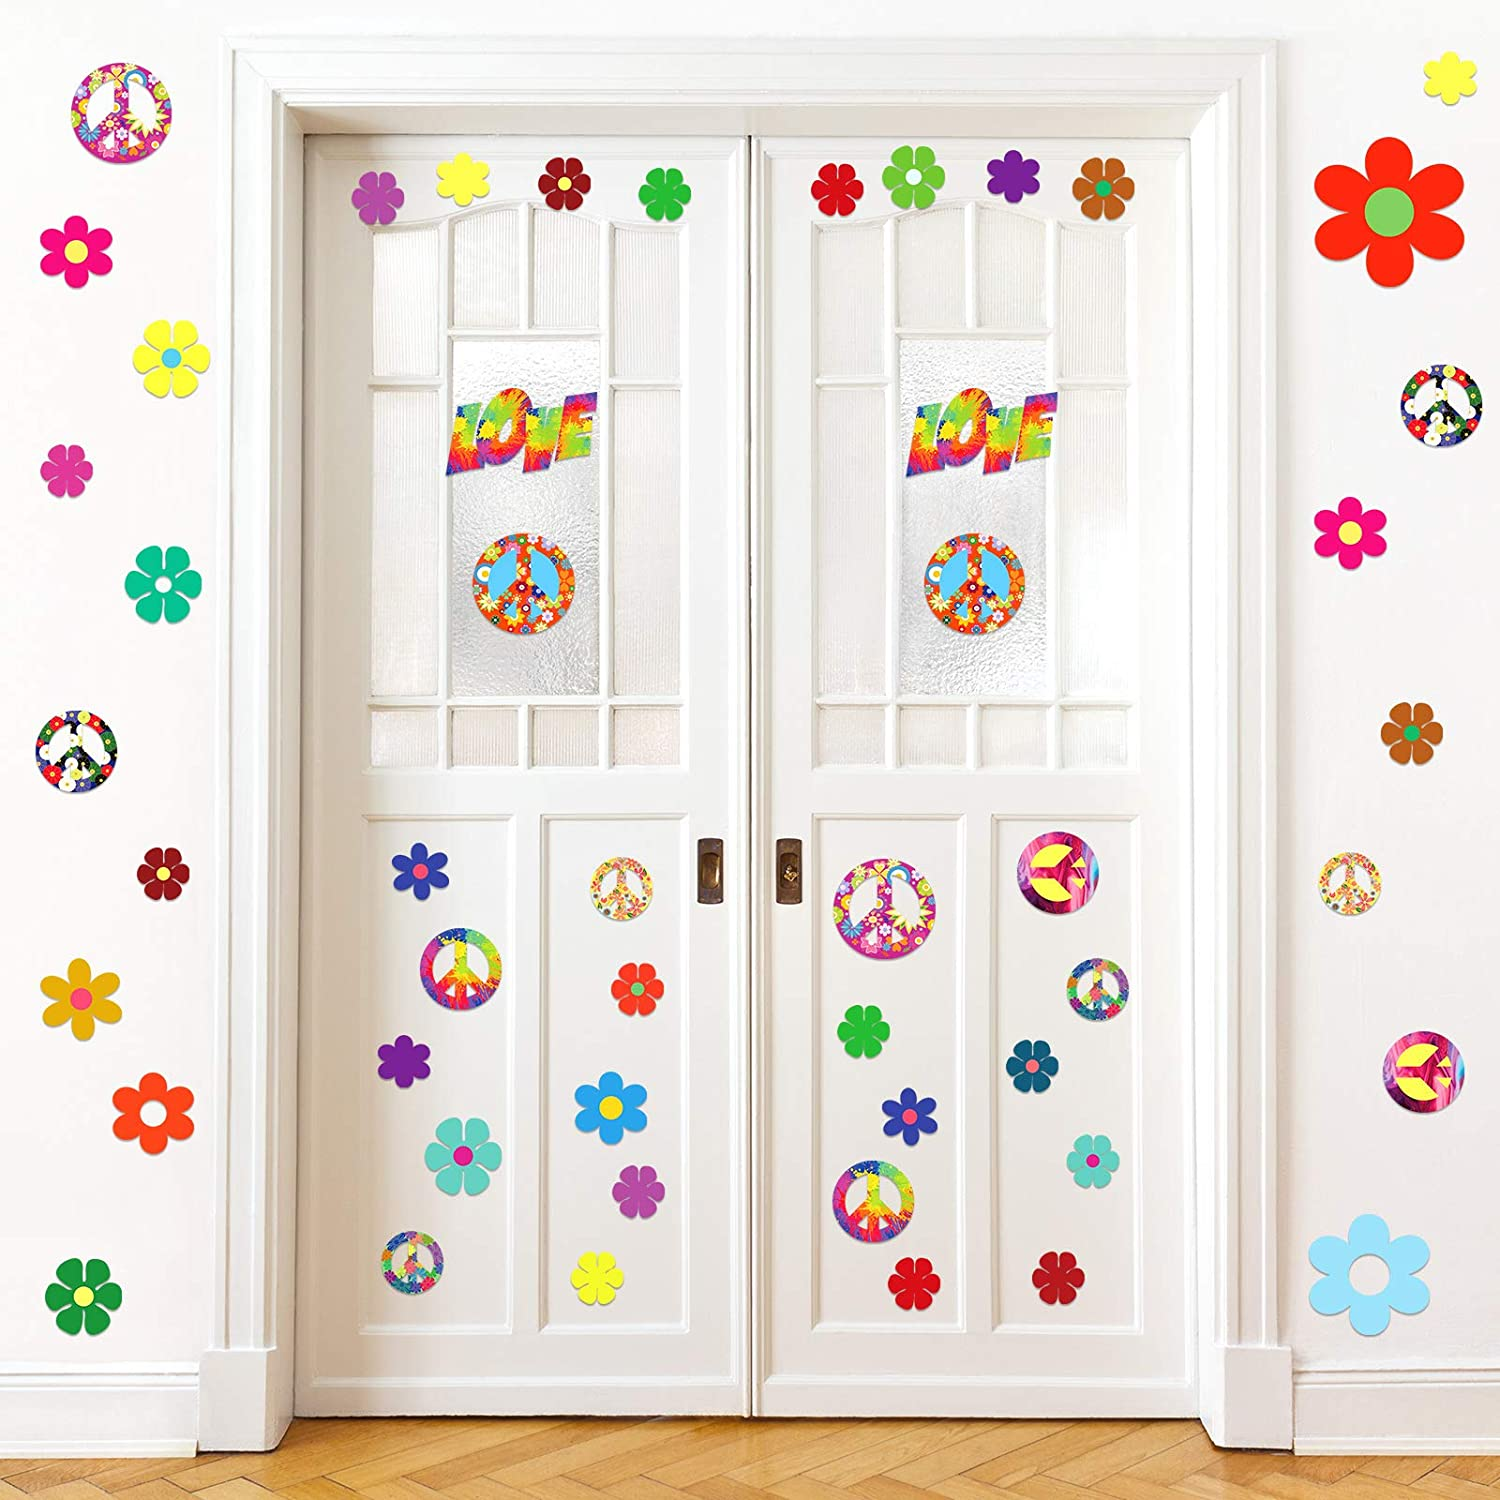 8 Sheets 60s Hippie Theme Party Sticker Retro Flower Stickers 60s Hippie Theme Party Retro Sun Flower Car Stickers Flowers Peace Sign Decals Colorful Hippie Decals for Laptops Skateboards Luggage